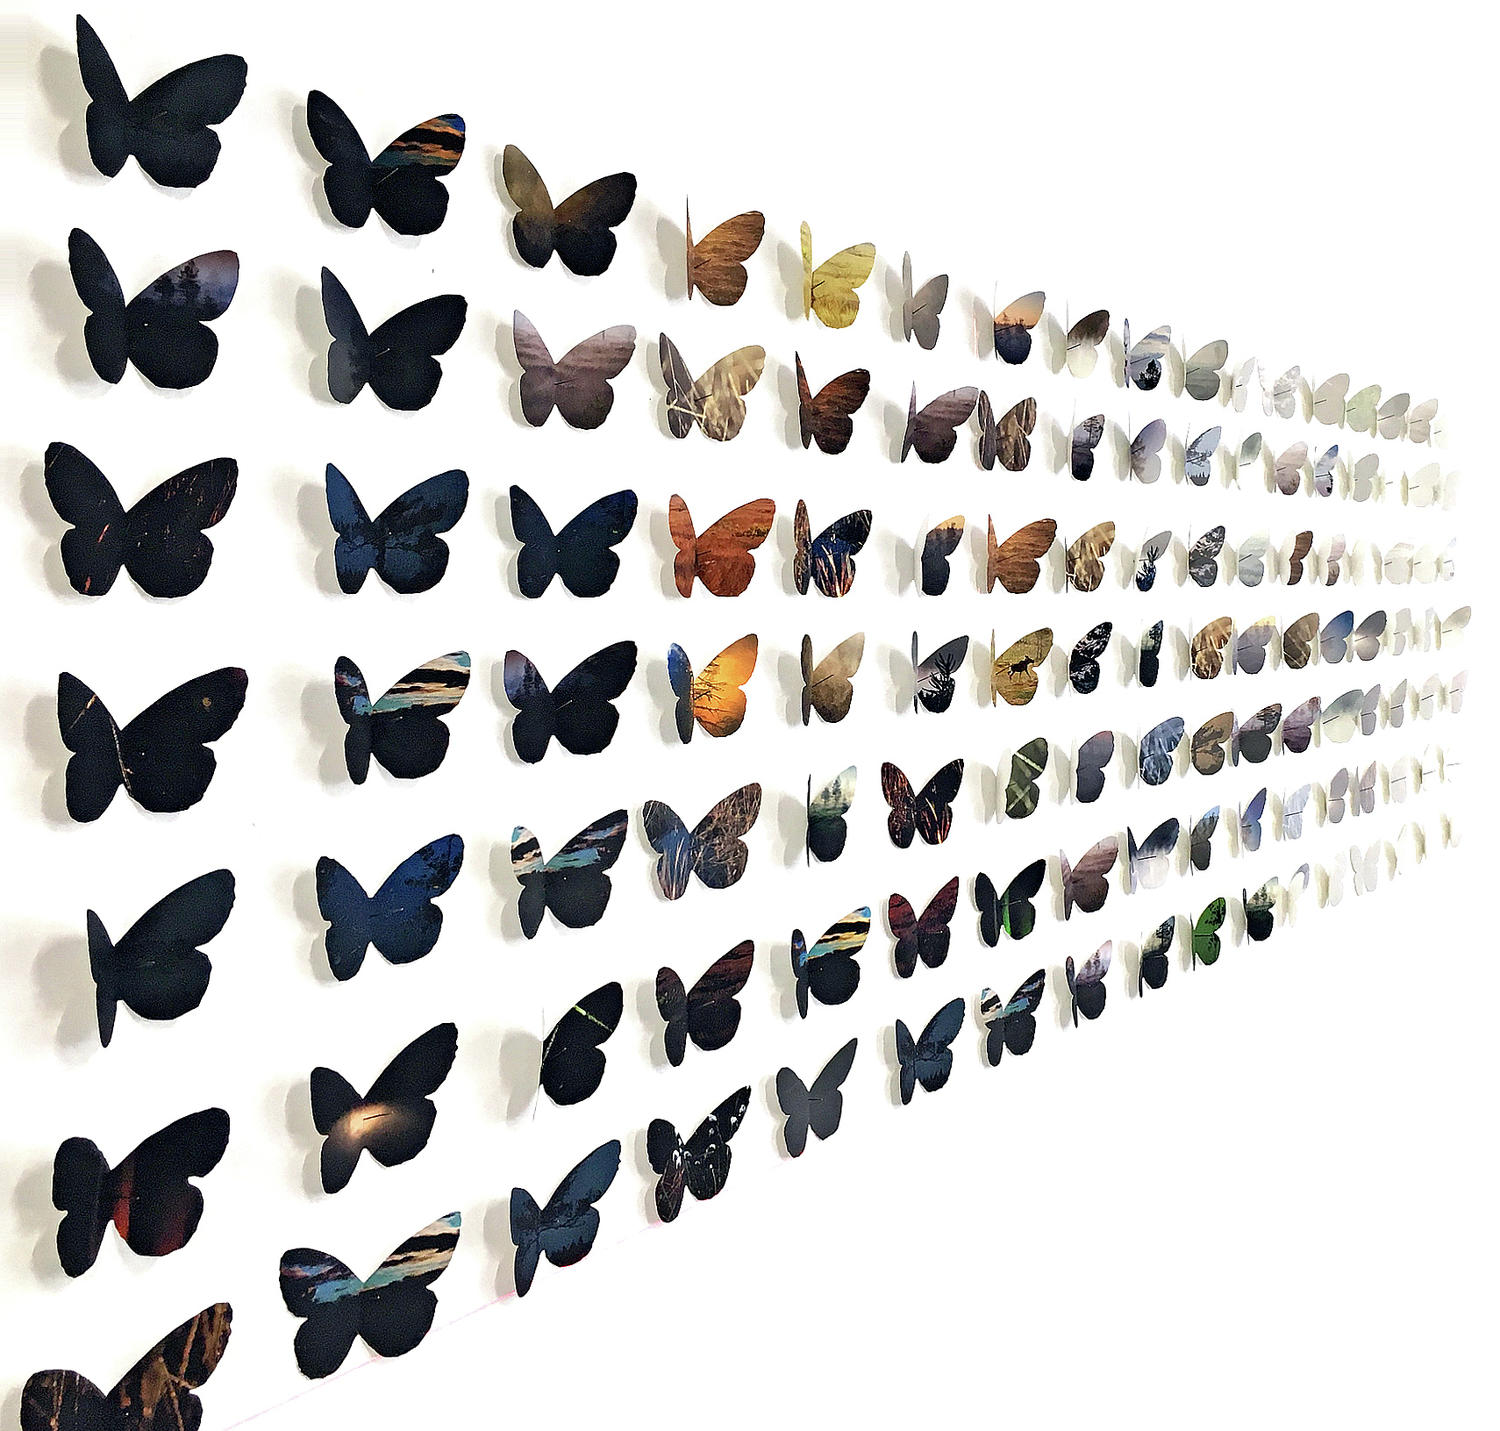 Butterfly effect - installation, 2018